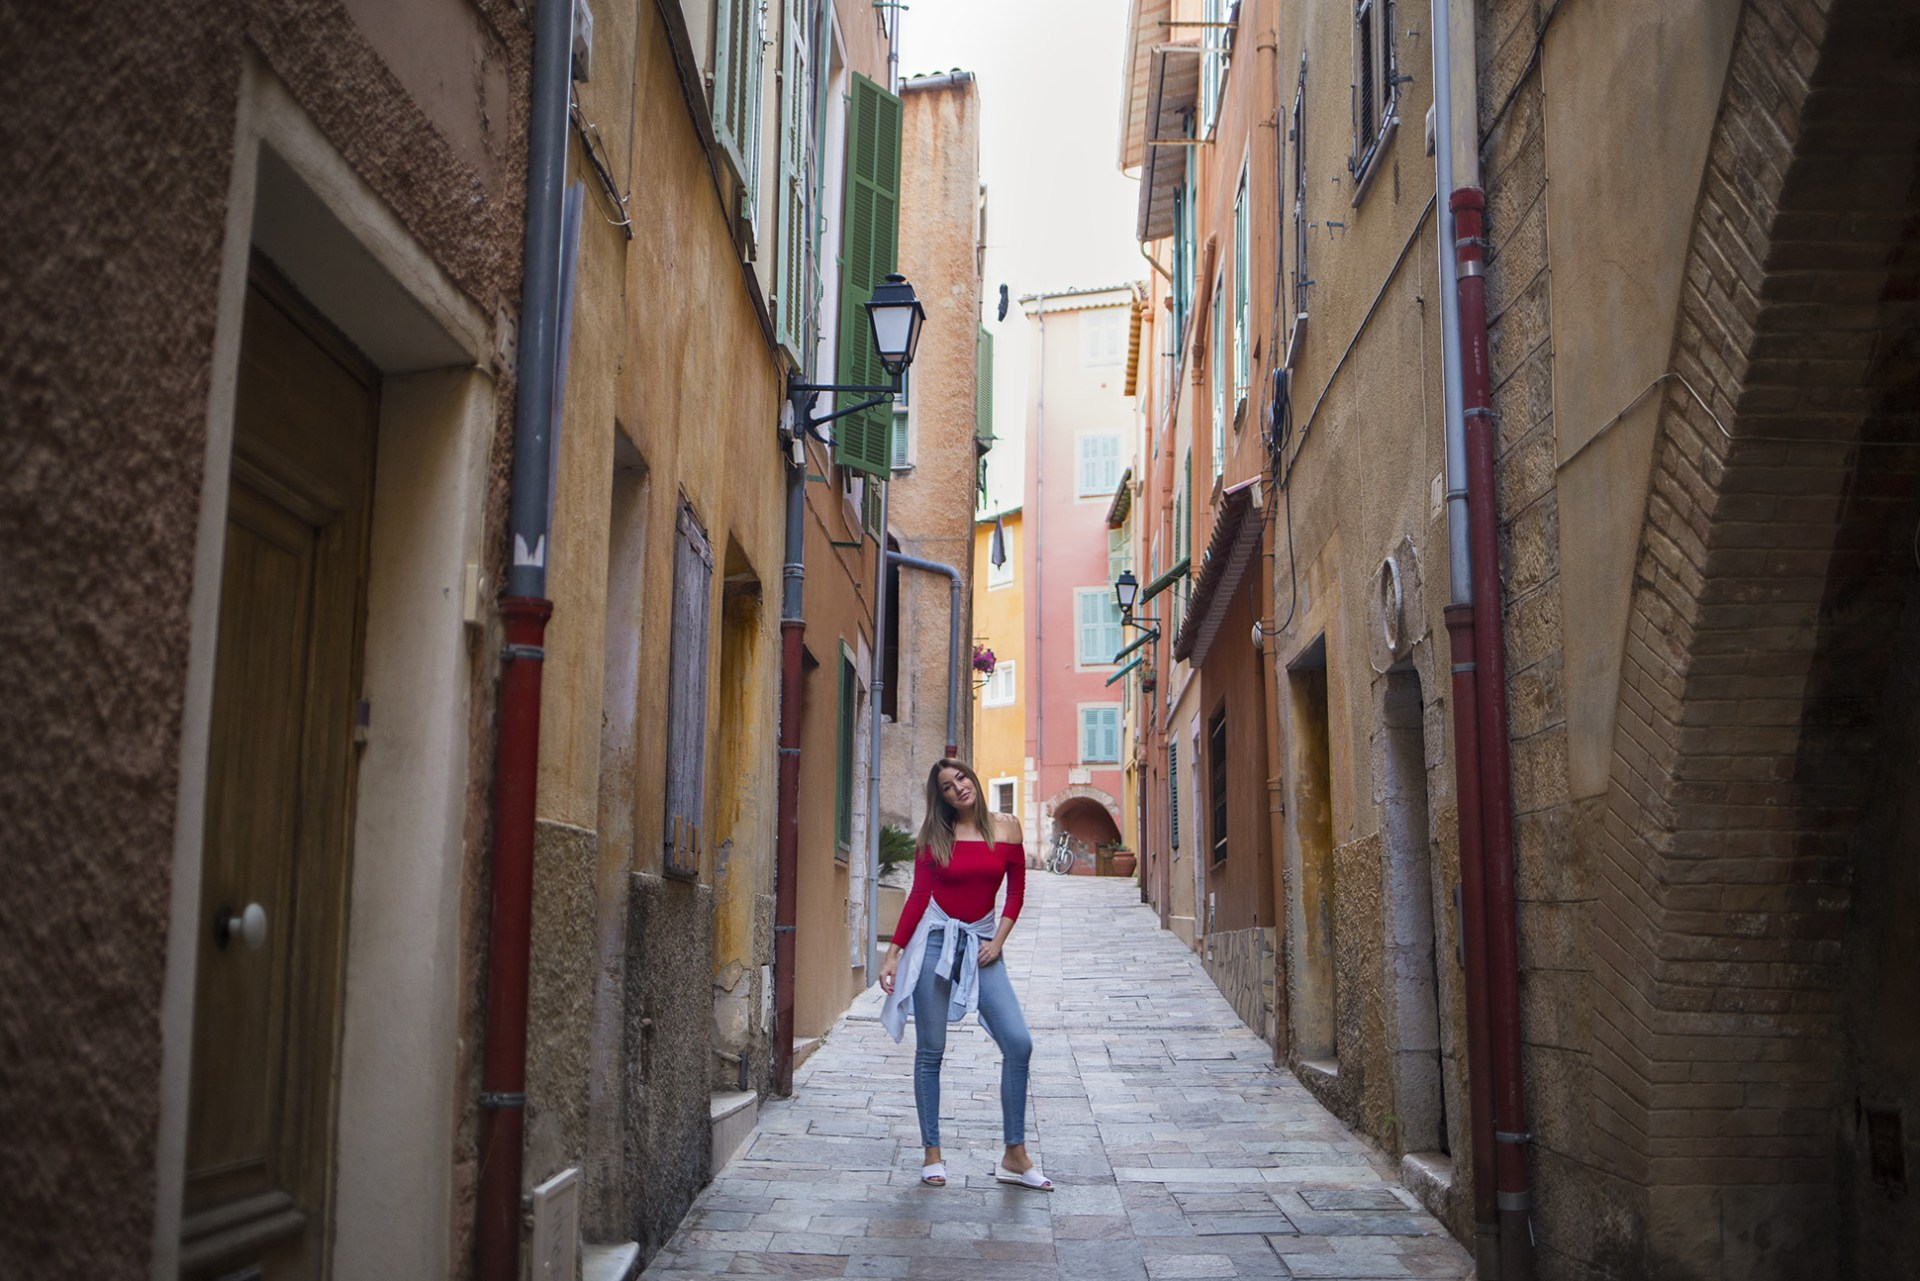 Explore the streets of old fishing village Villefranche-sur-mer